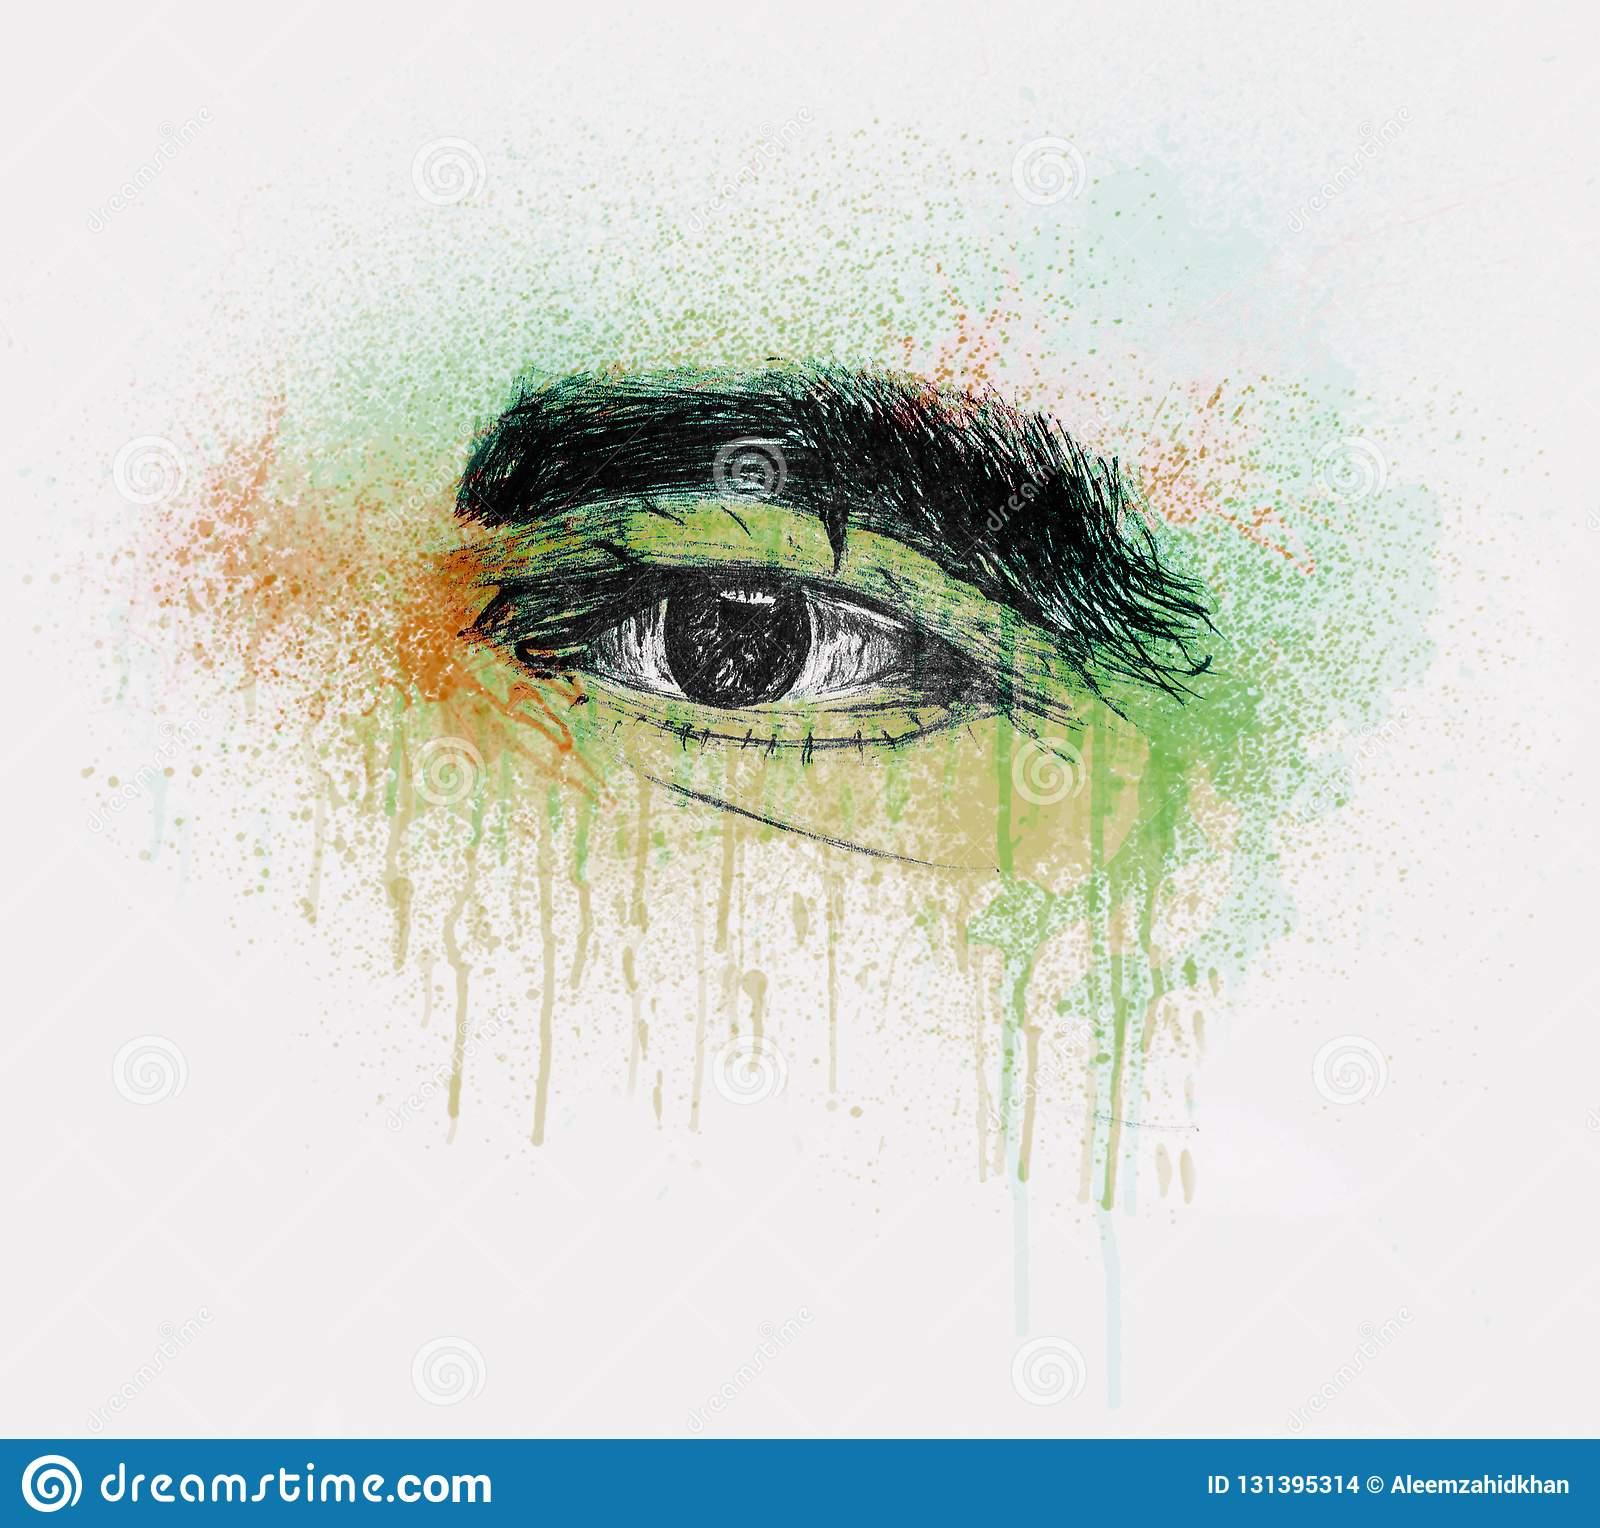 Hand drawn human eye of a old man with thick eyebrows pencil sketch and water color